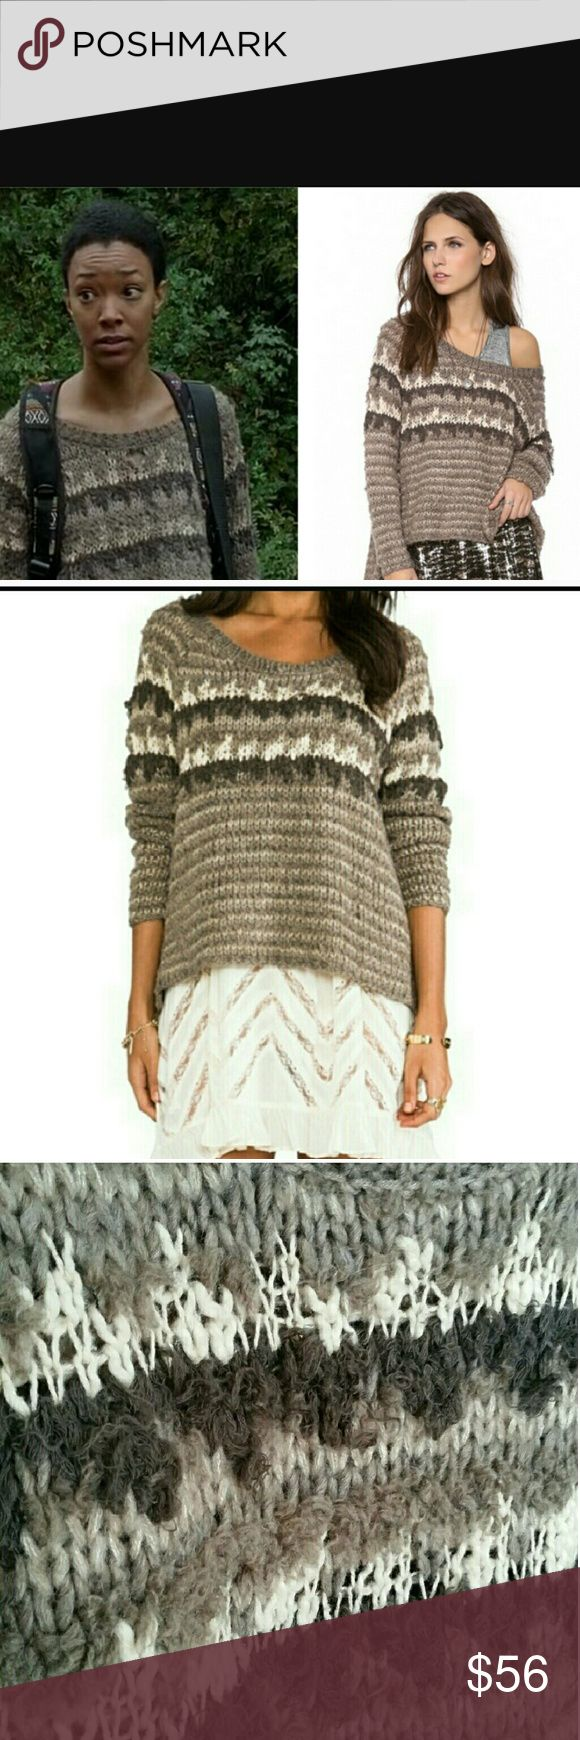 """Free People Fair Isle Chunky Knit Sweater As seen on Walking Dead!  Free People Fair Isle Chunky Knit Sweater This beautiful sweater was worn once, no flaws on sweater! The tag has a small hole from pin, ( shown on pictures) otherwise flawless! Very soft, chunky knit fair isle print. Oversized fit. Material 53% acrylic, 26% wool, 9% cotton. Armpit to armpit 23"""", neck to hem 16"""", neck to back panel hem 23"""", sleeve length 18"""" Sweaters Crew & Scoop Necks"""